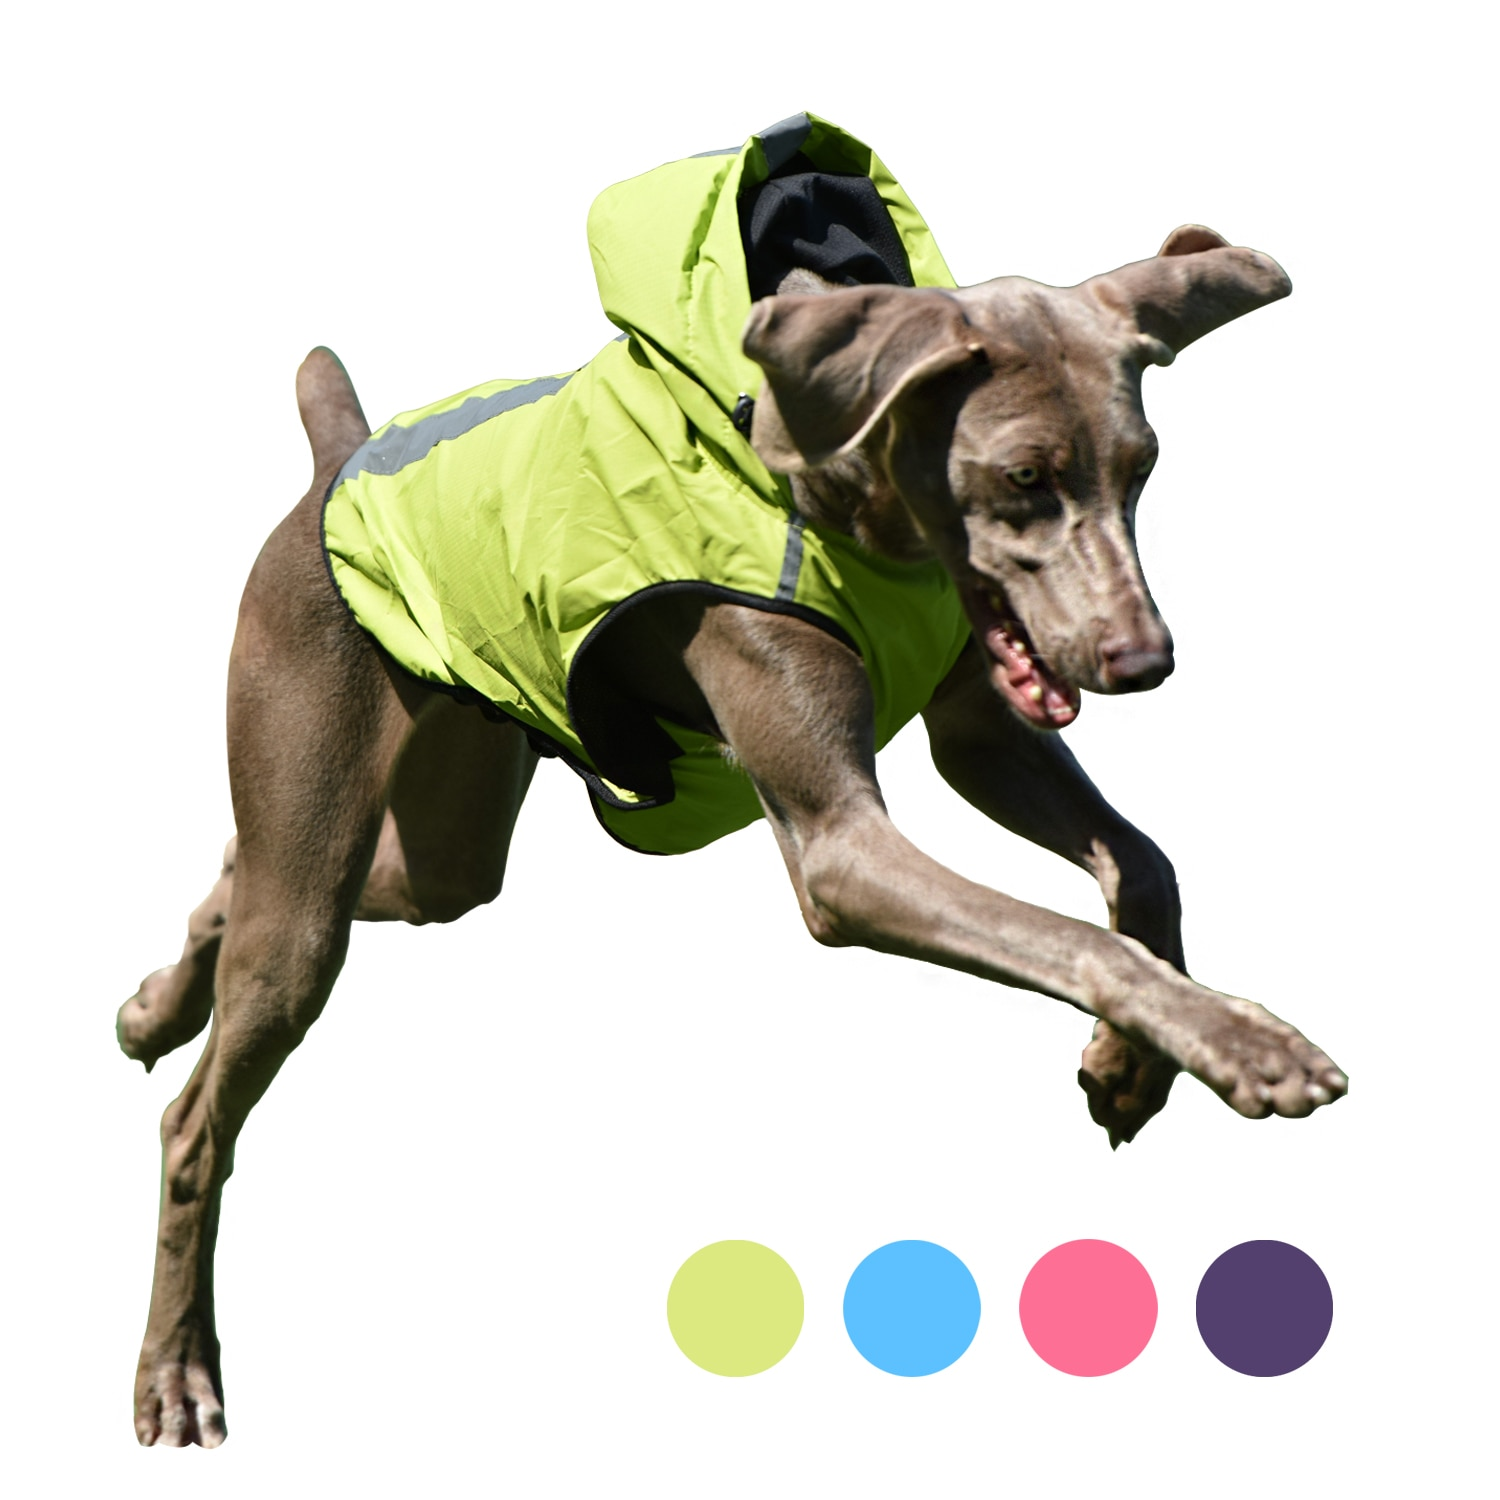 Chaleco reflectante impermeable Para perro mascota, chaqueta impermeable Para Perros pequeños, medianos...